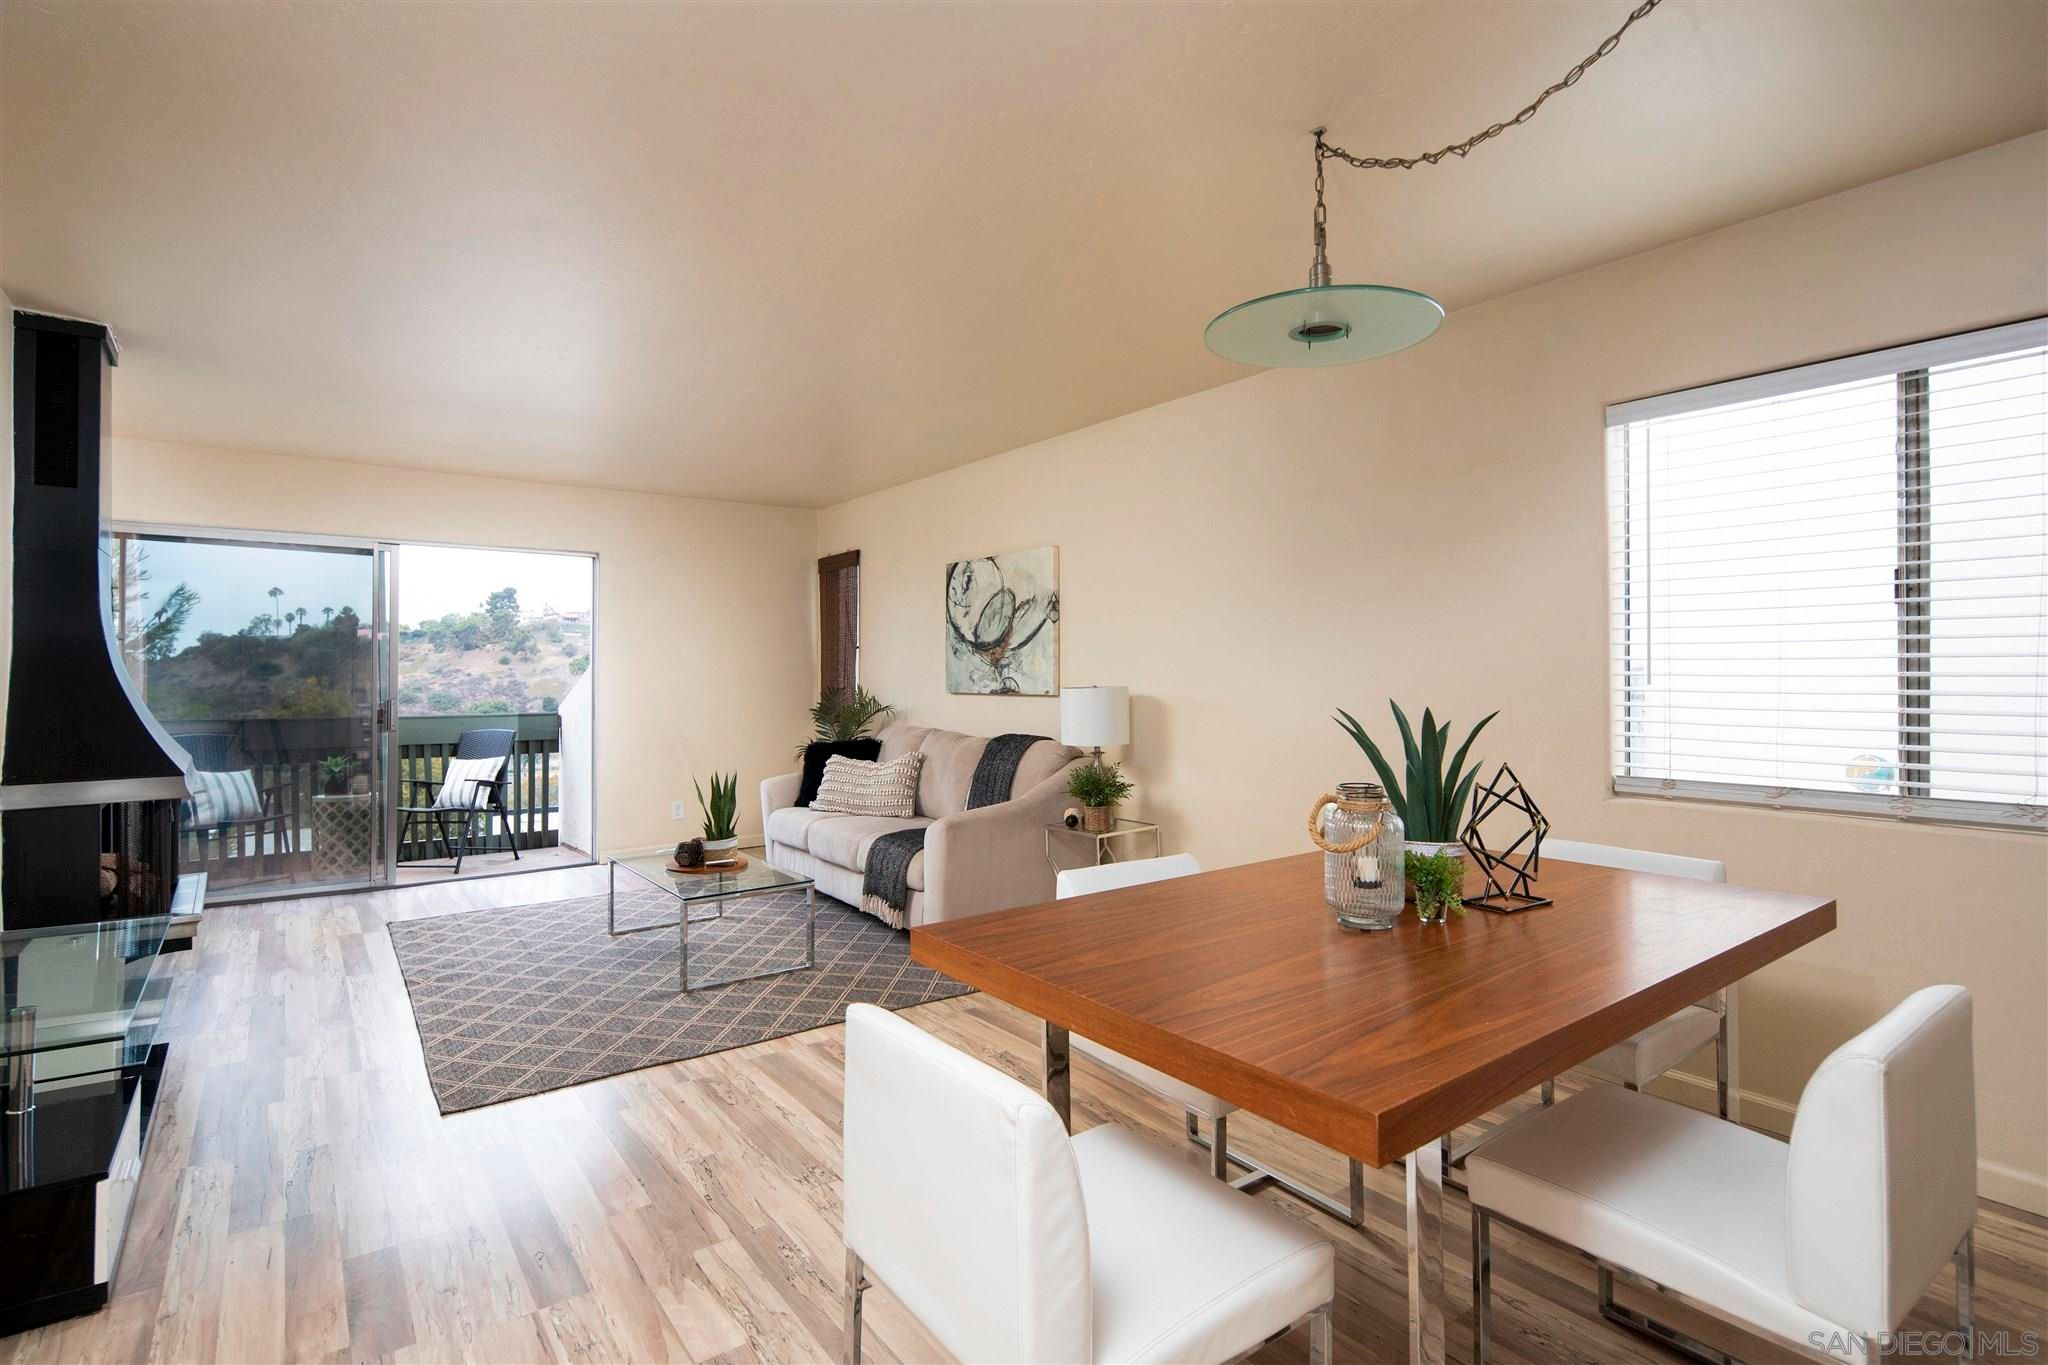 Main Photo: CLAIREMONT Condo for sale : 1 bedrooms : 4060 Huerfano Ave #240 in San Diego